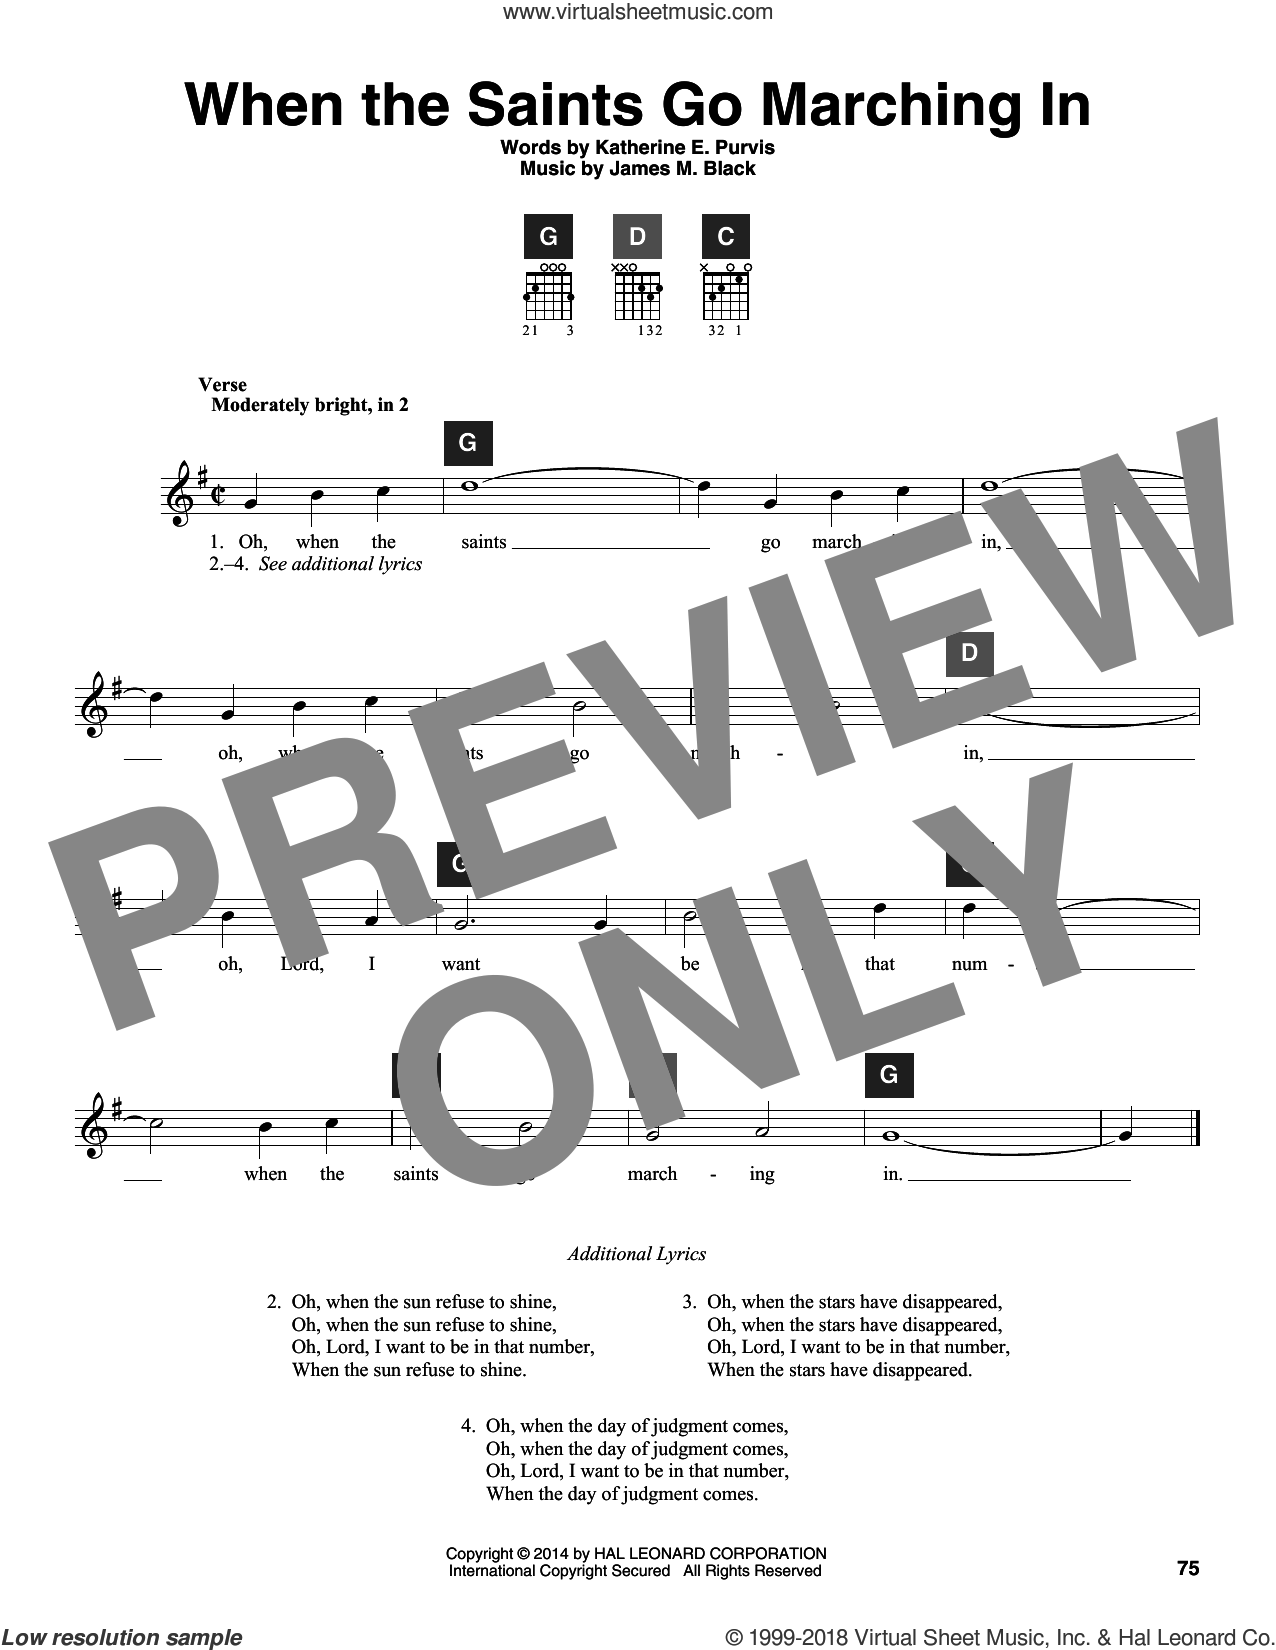 When The Saints Go Marching In sheet music for guitar solo (ChordBuddy system) by James M. Black, Travis Perry and Katherine E. Purvis, intermediate guitar (ChordBuddy system)